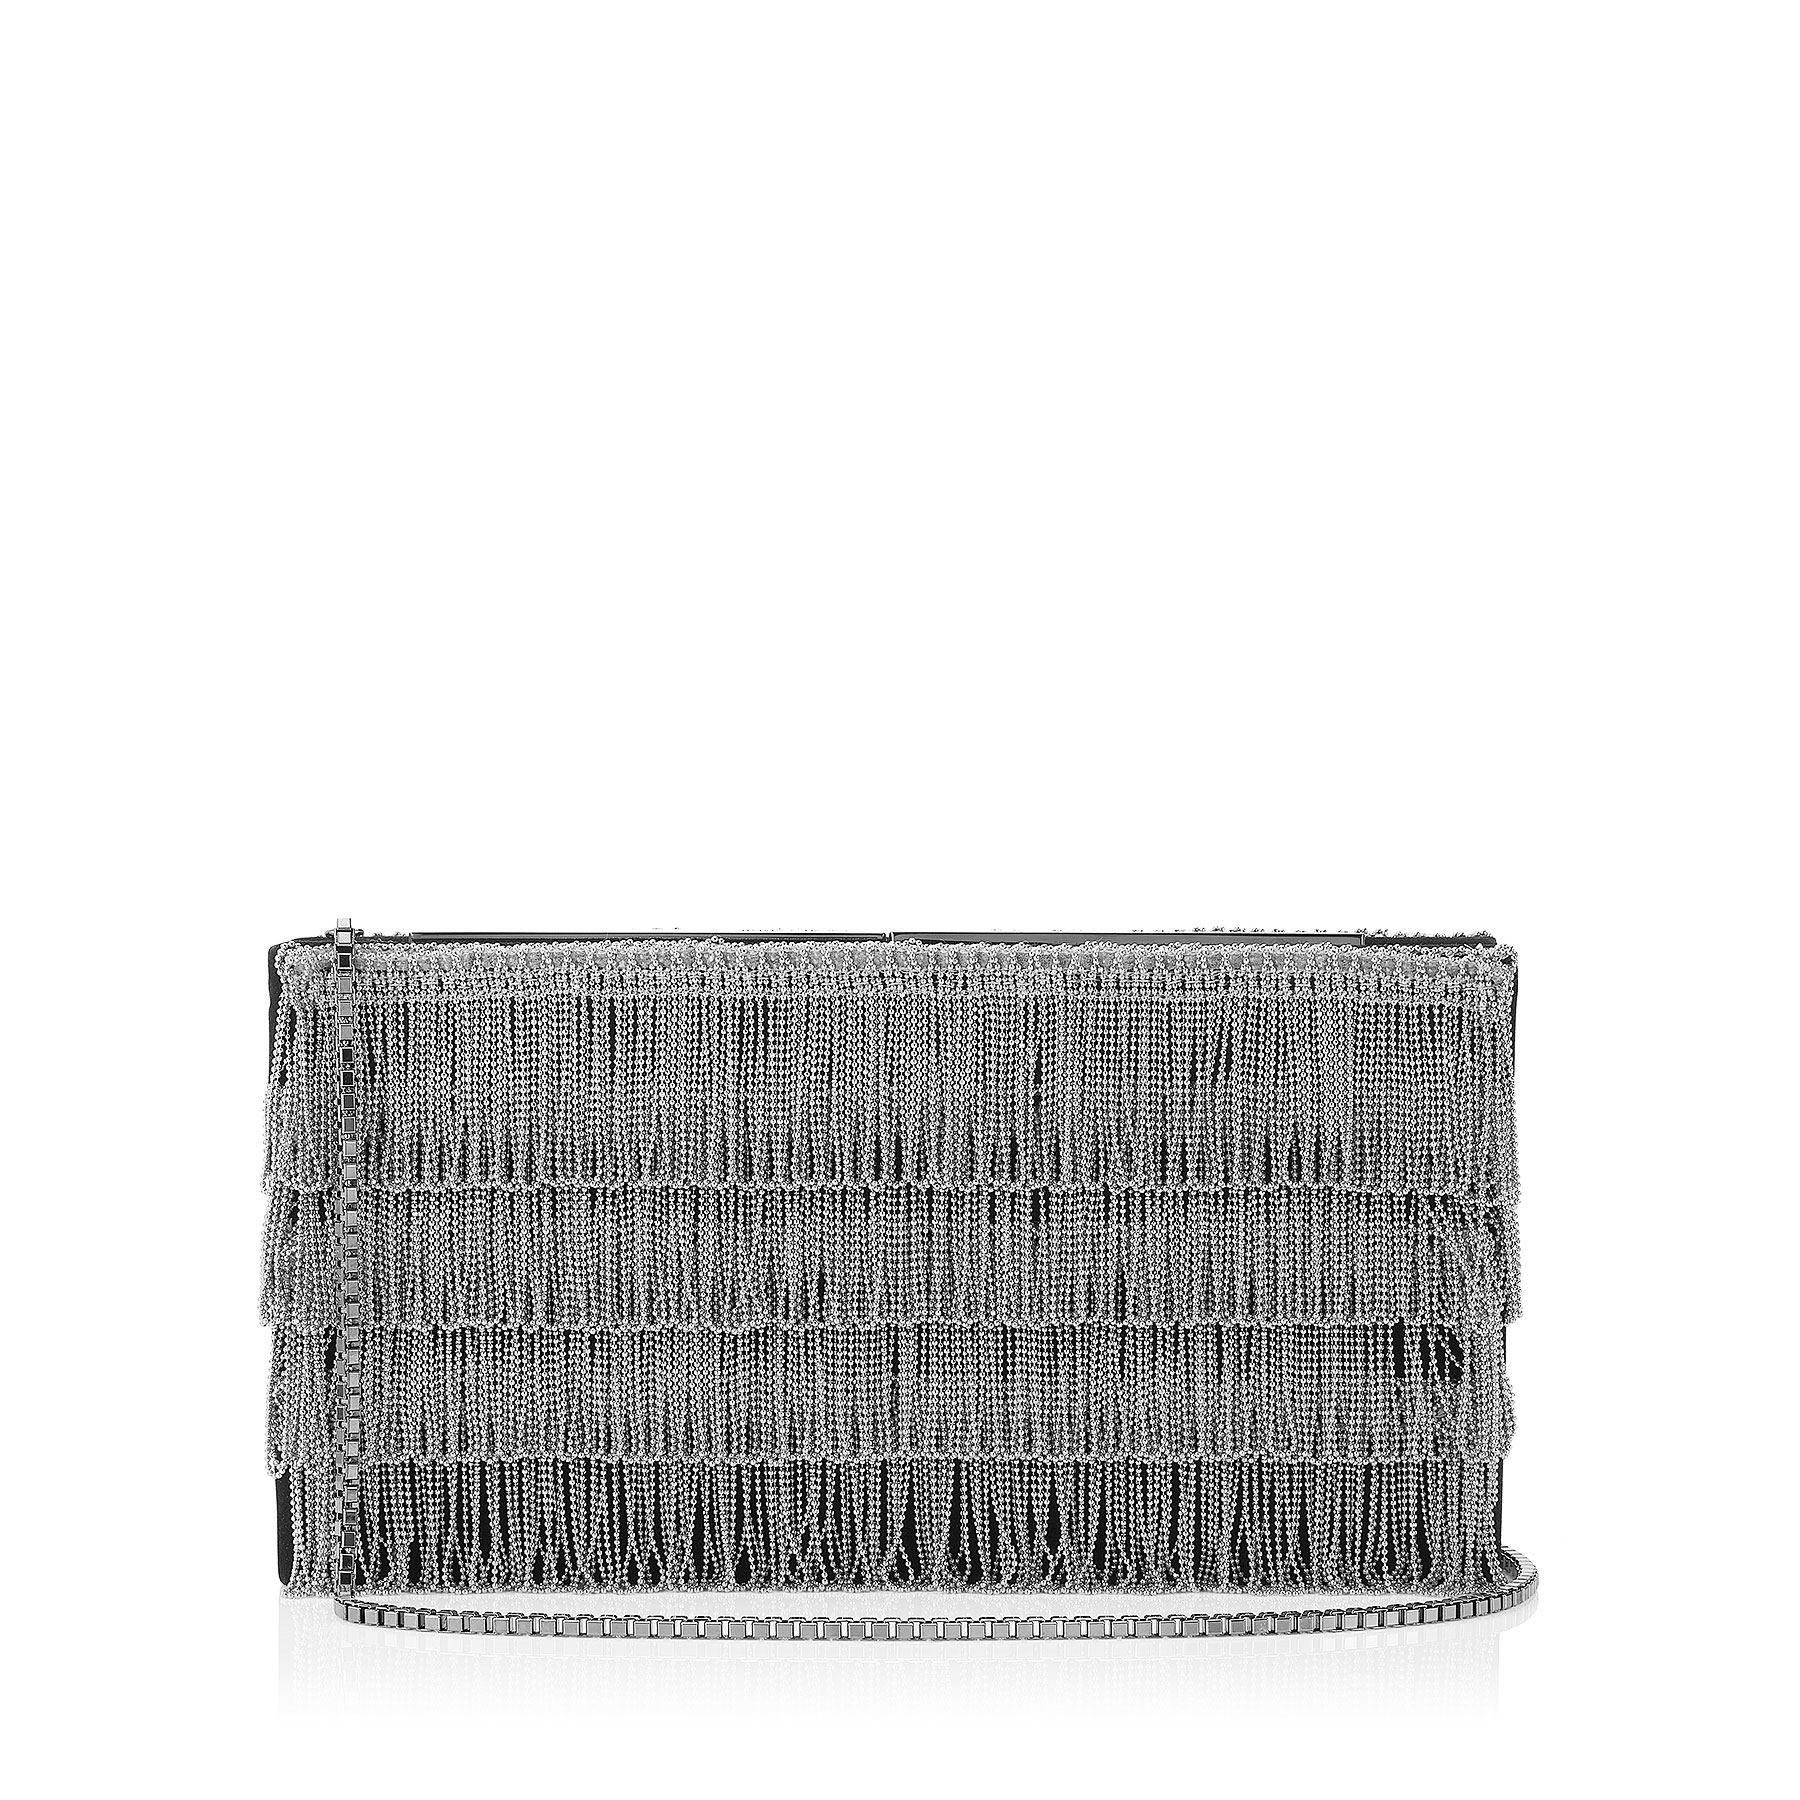 TUX Platinum Suede Clutch Bag with Crystal Chainmail Tassels